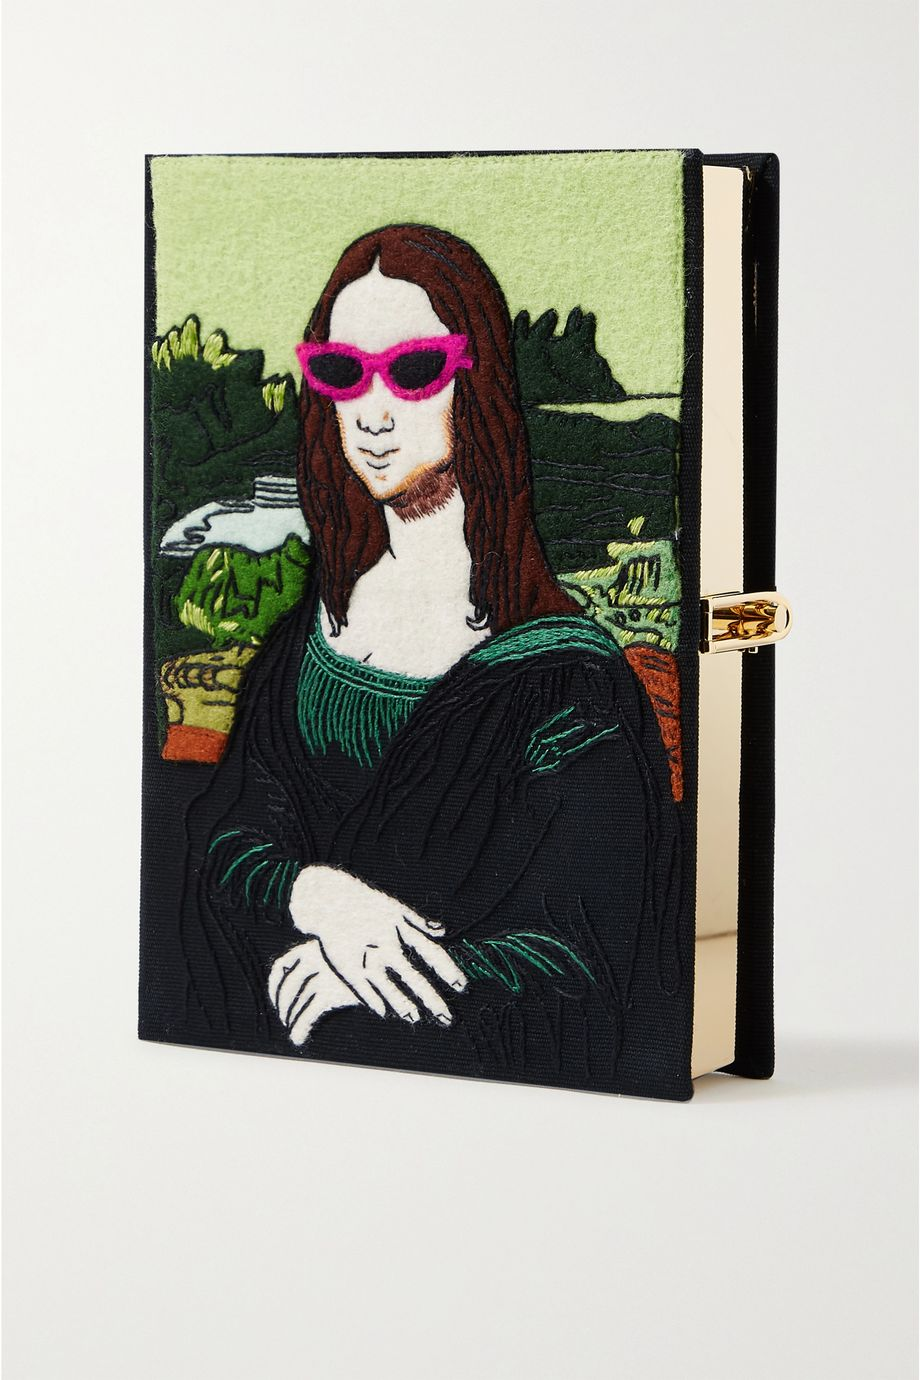 Olympia Le-Tan Mona Lisa embroidered appliquéd canvas clutch